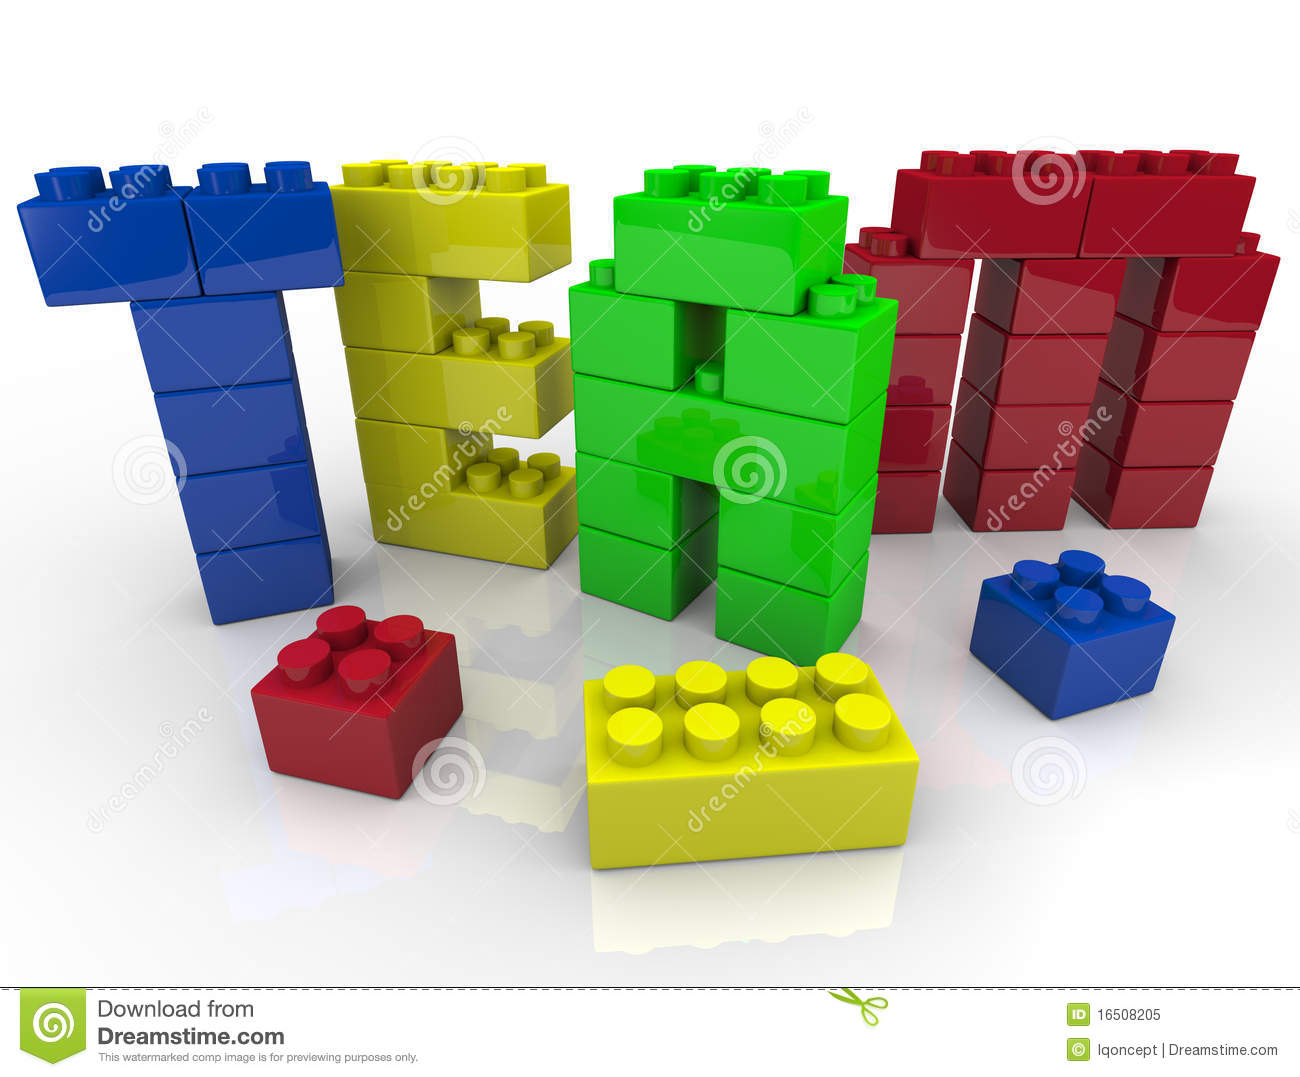 Teenagers Team Building Toys : Team building with toy blocks royalty free stock photo